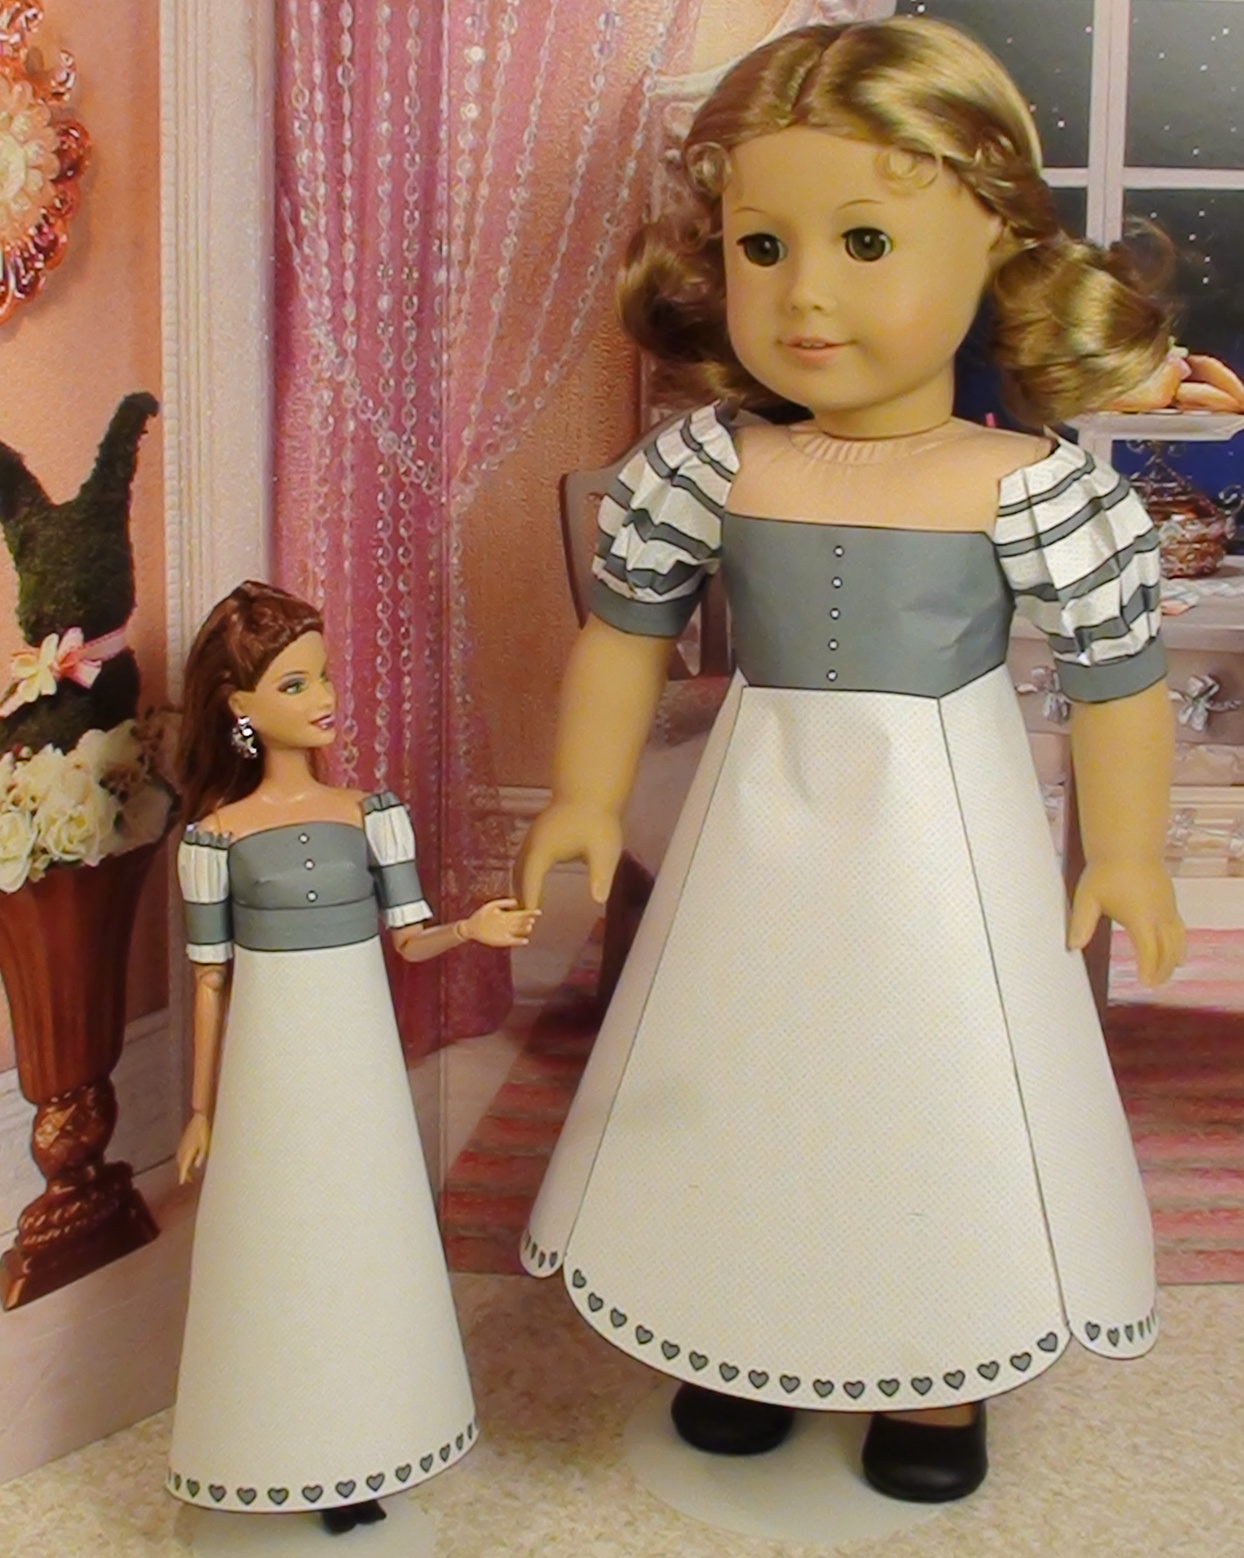 ... girl dolls wanted a new dress so i made her one my barbie fashionista